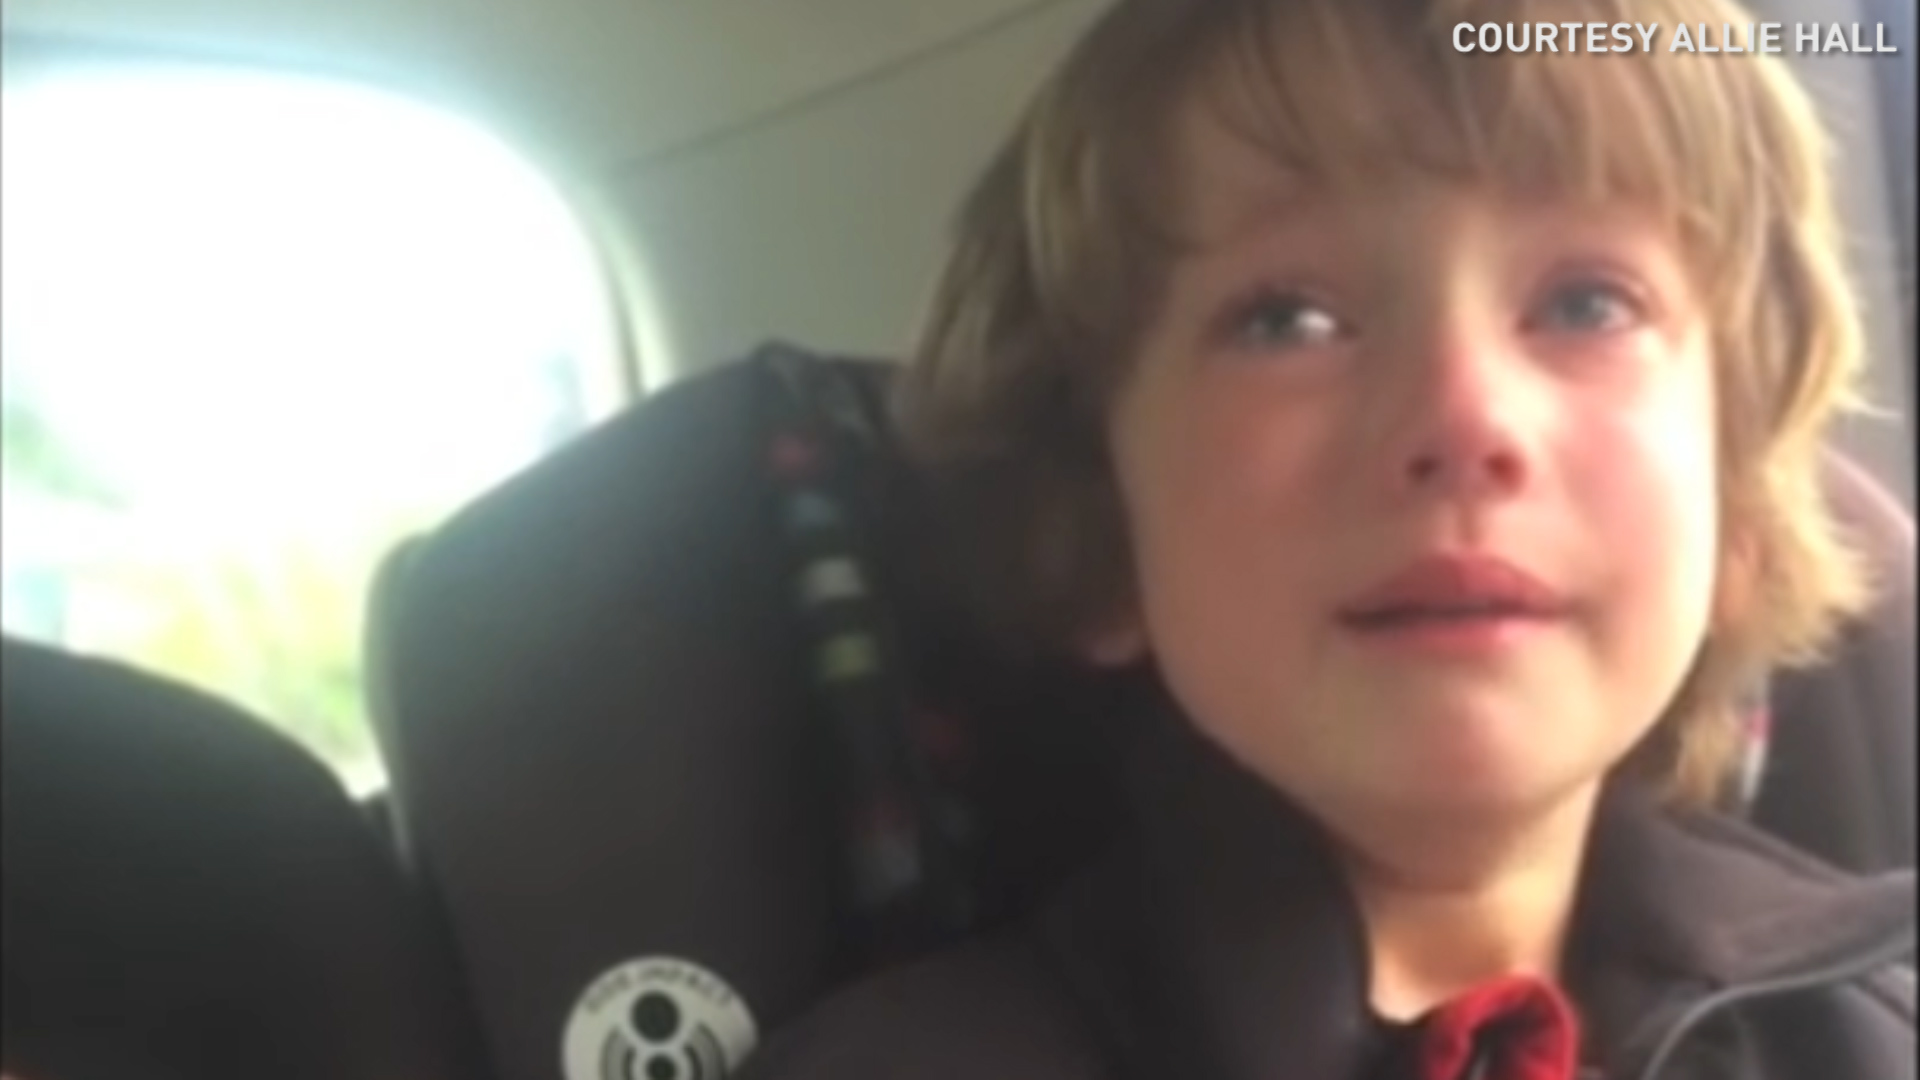 6-year-old can't handle 'dumb people' wrecking Earth